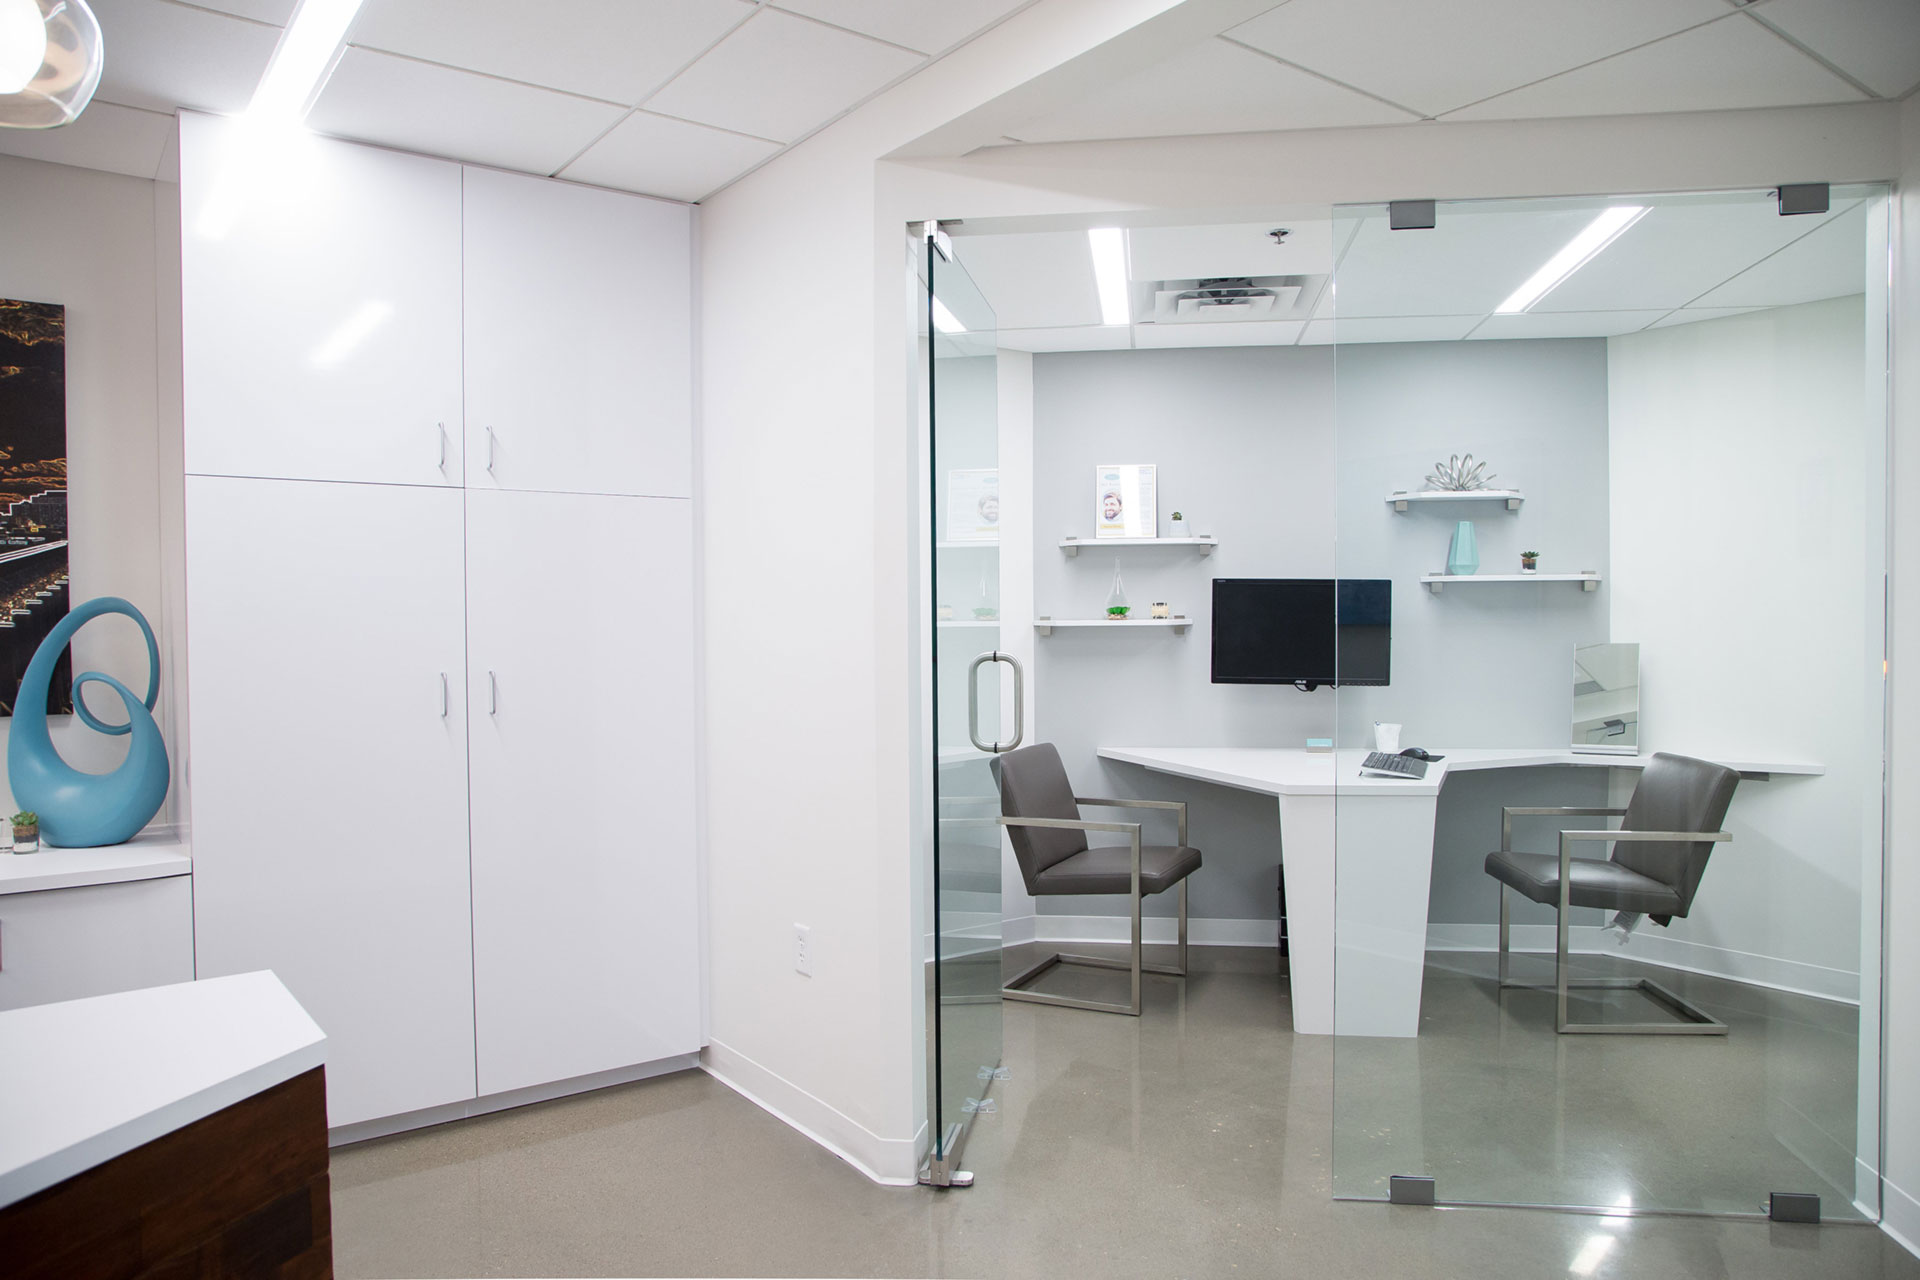 The dentist's office features high tech gadgets and a sleek, white interior design.